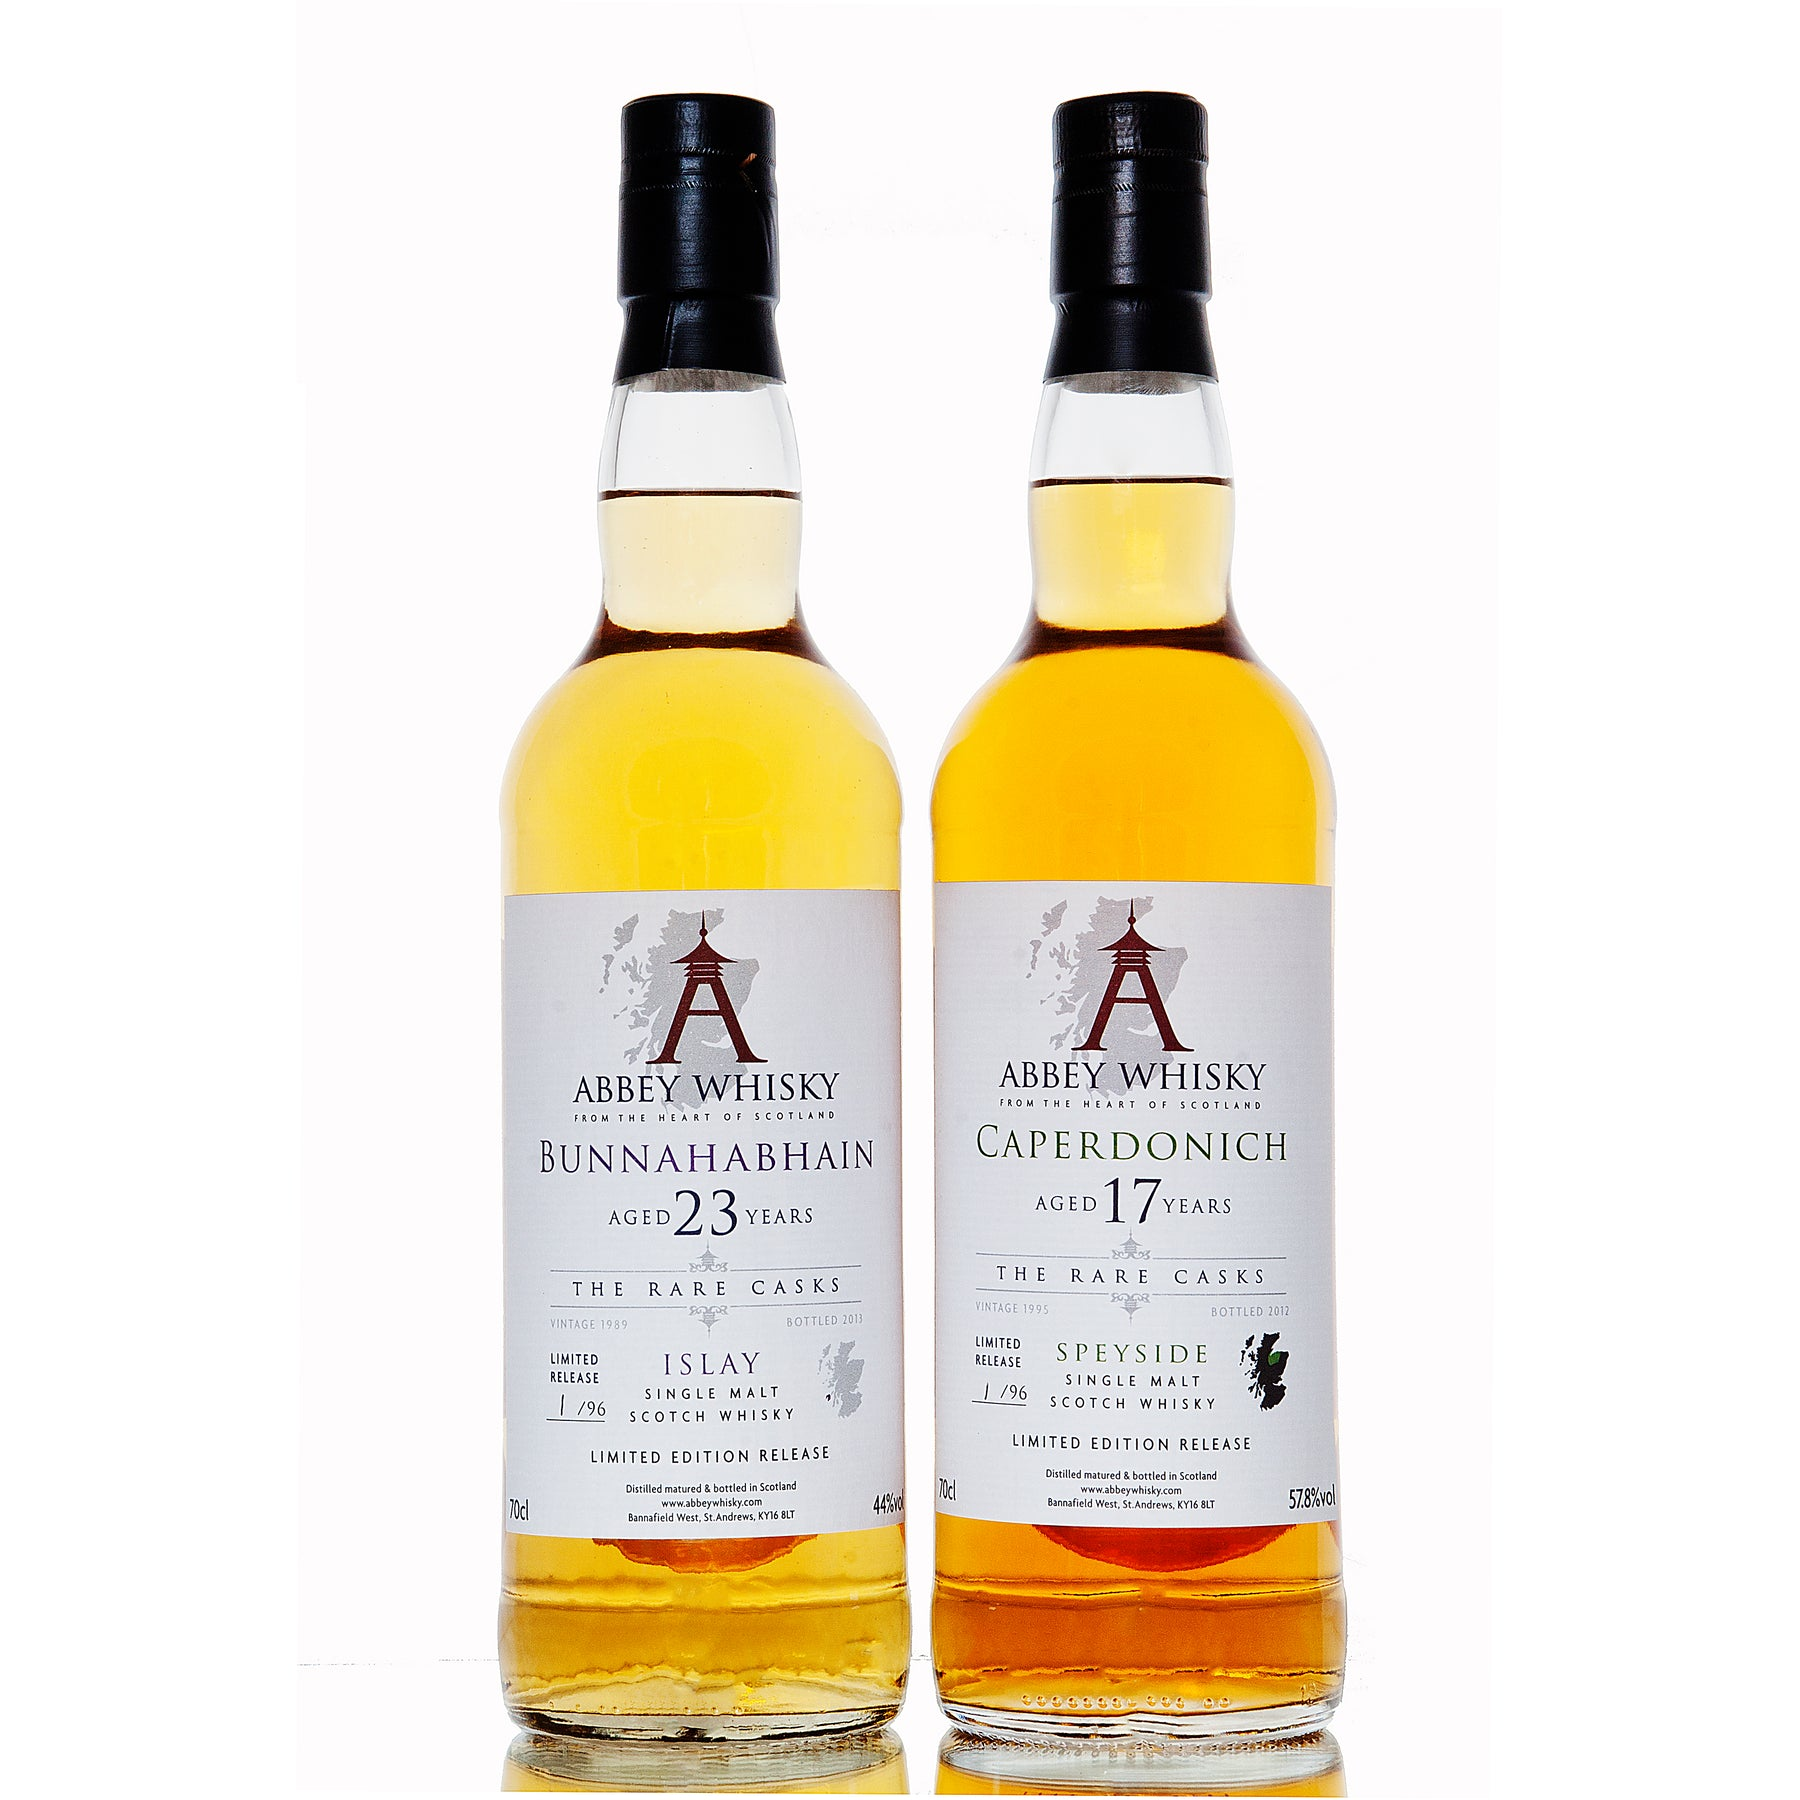 The 2nd release in 'The Rare Casks' series by Abbey Whisky has arrived!